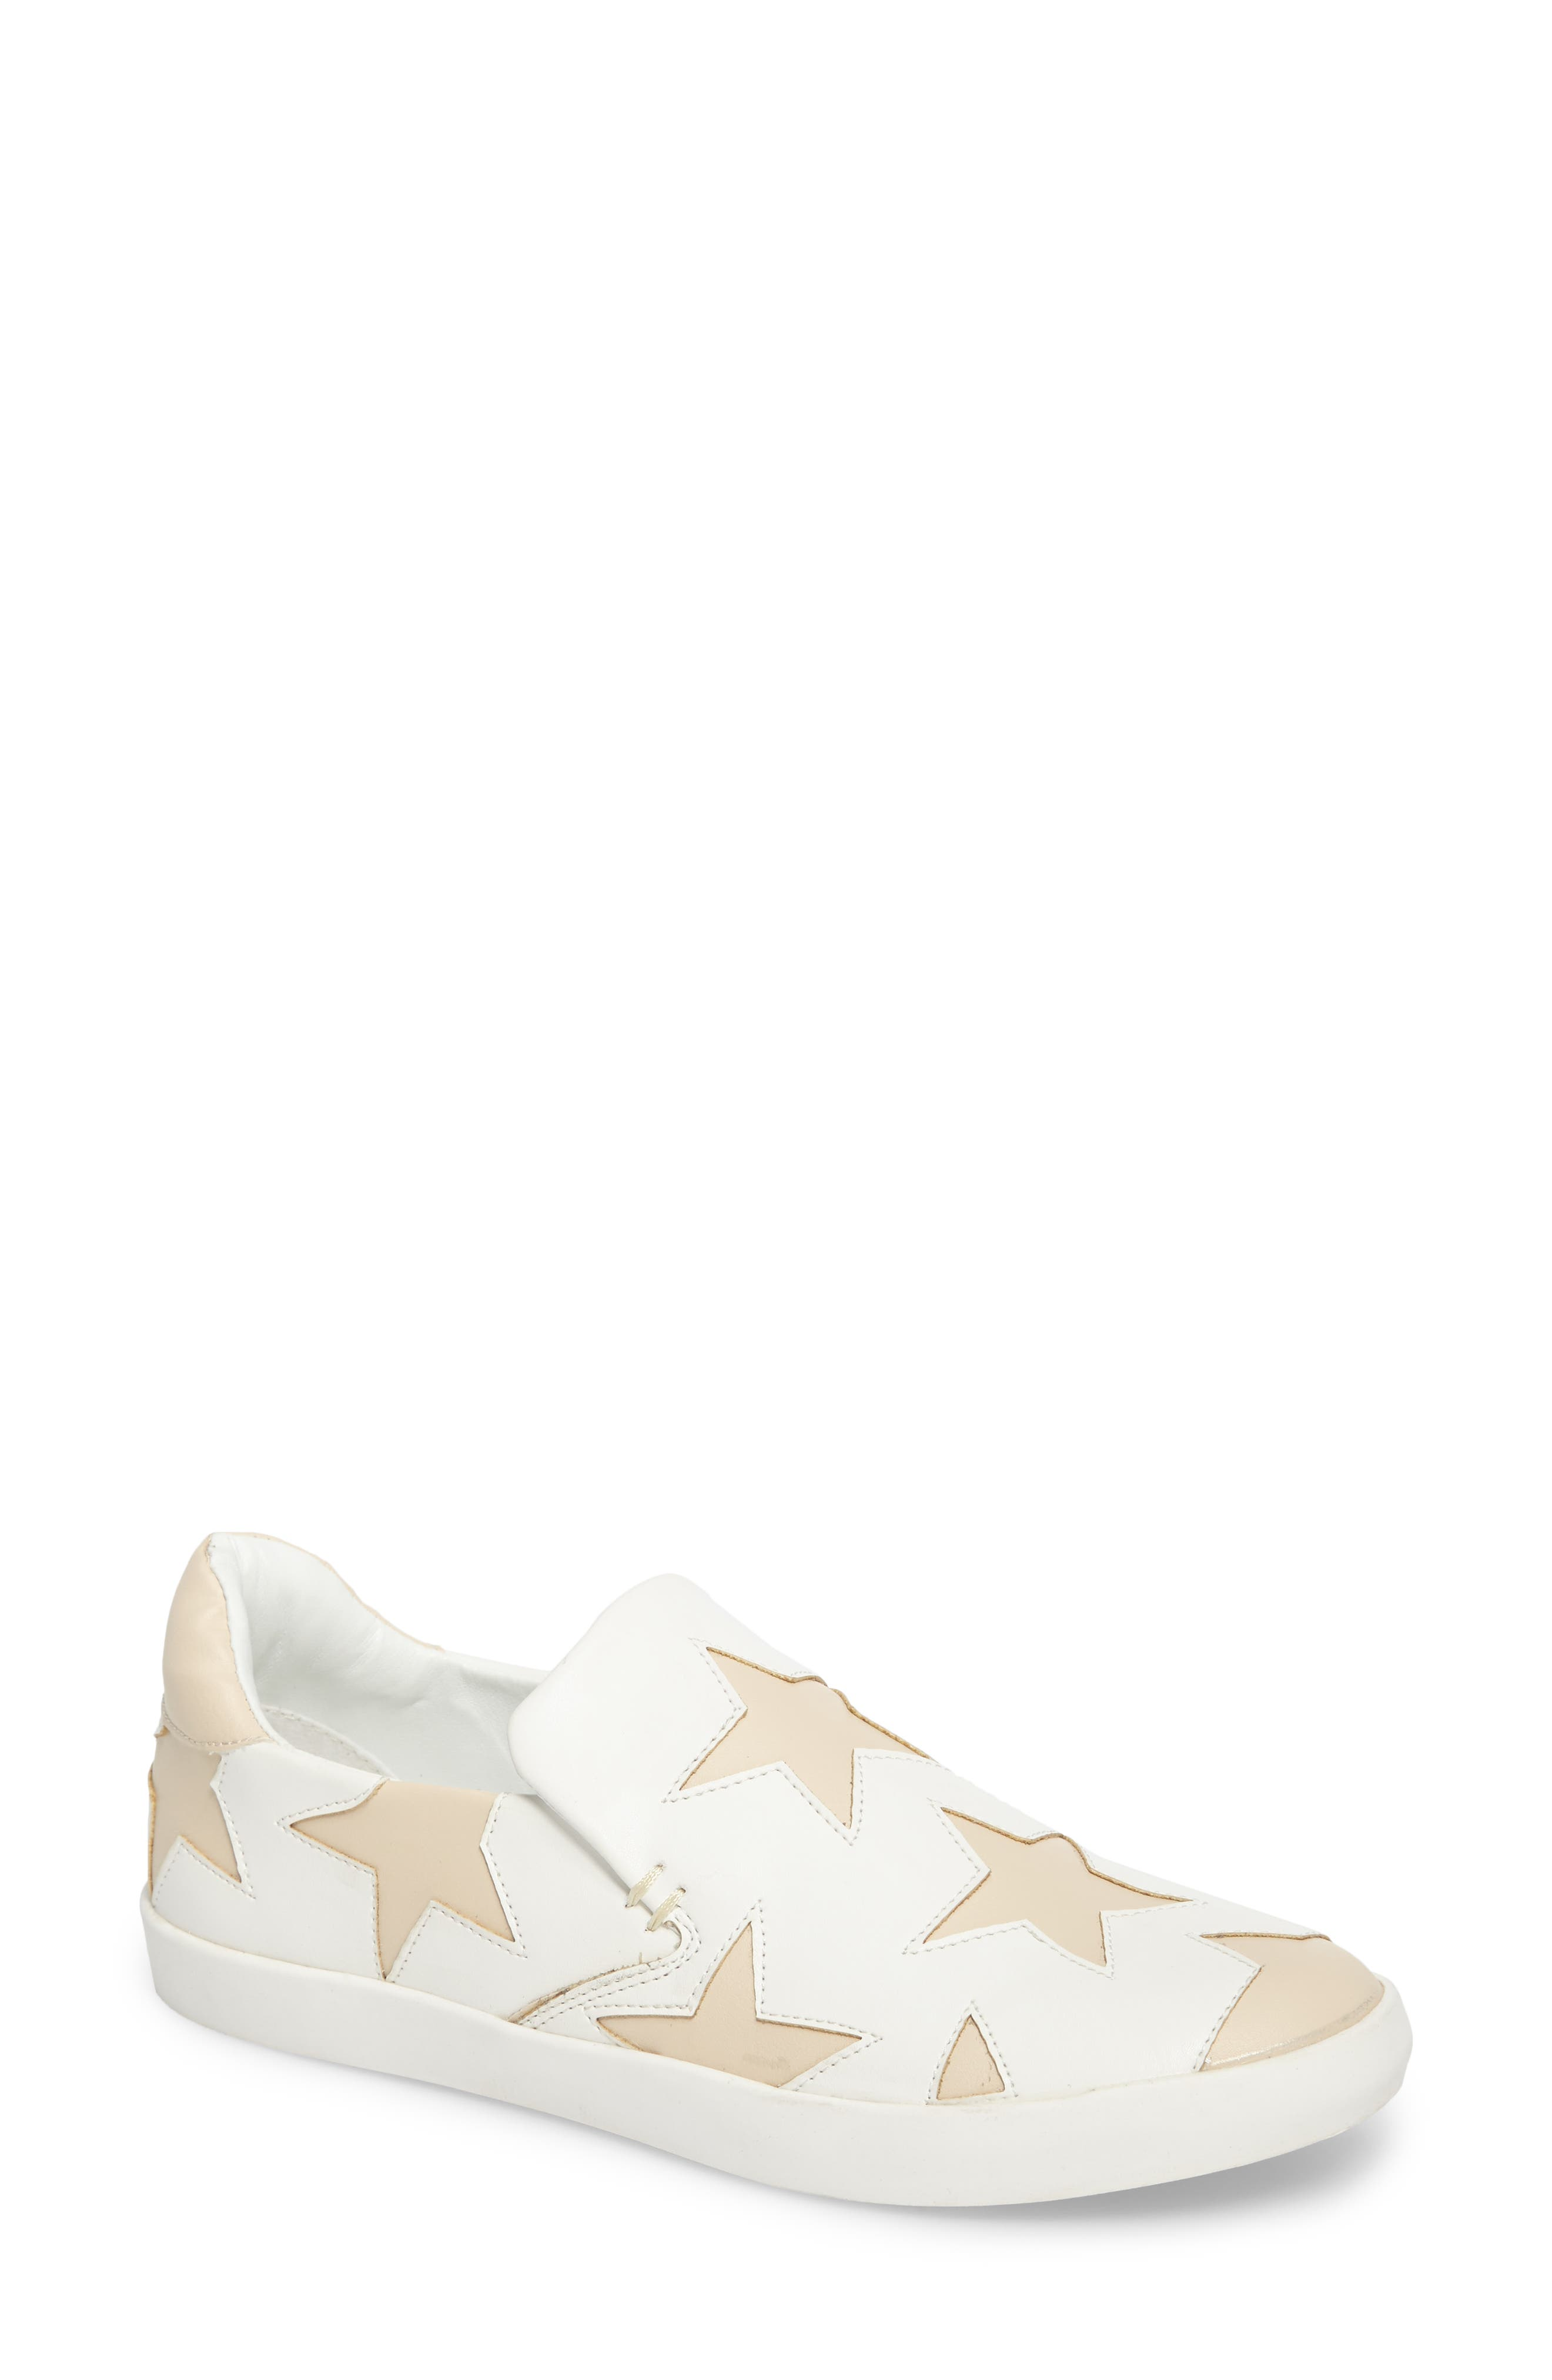 Main Image - Coconuts by Matisse Highlight Slip-On Star Sneaker (Women)